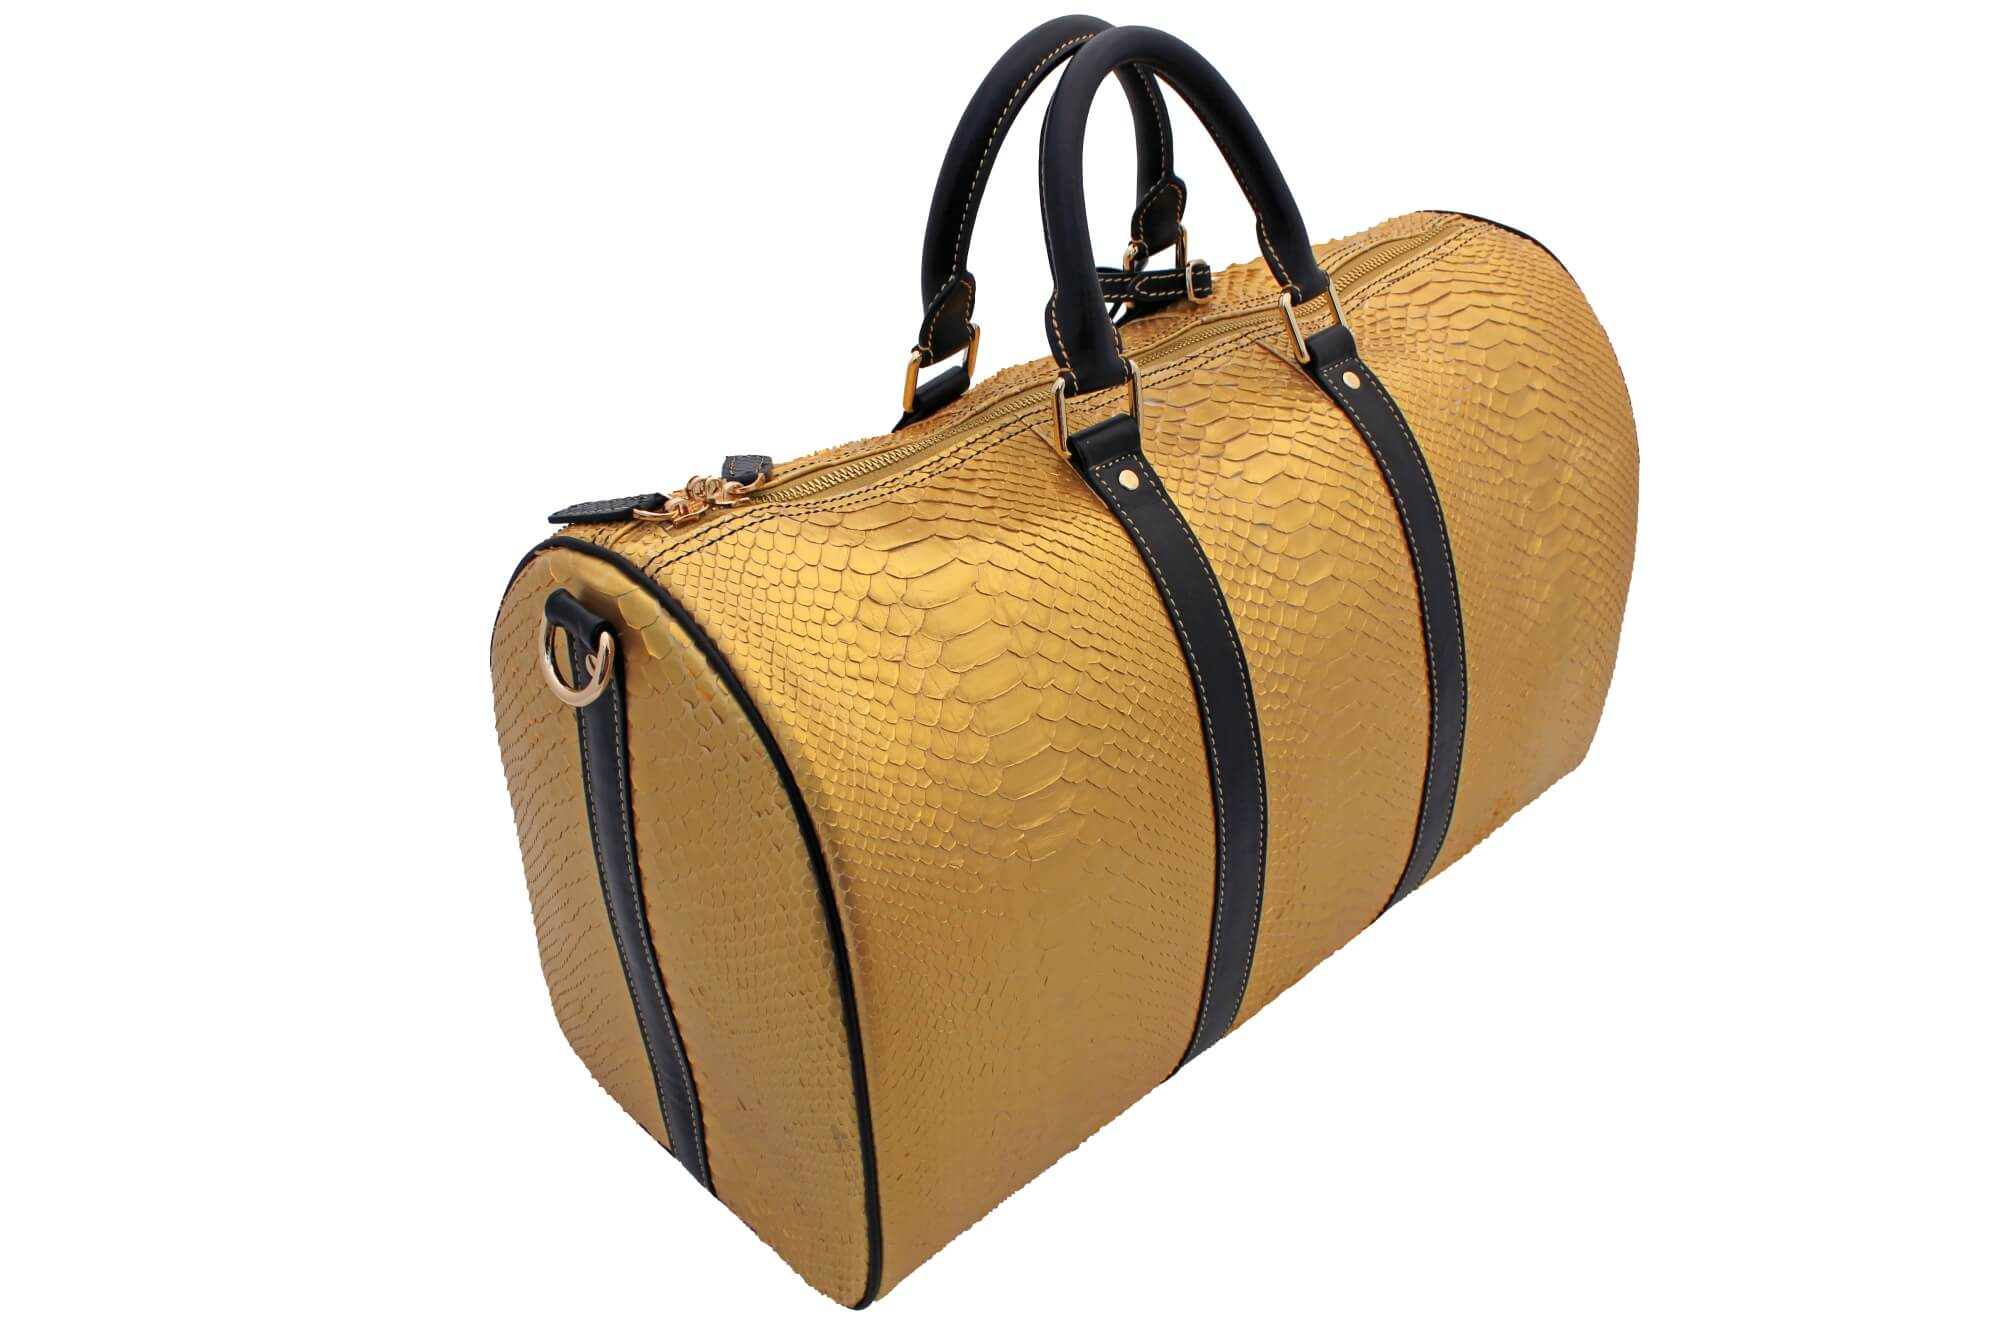 Gold Plated Python Skin Duffle Bag